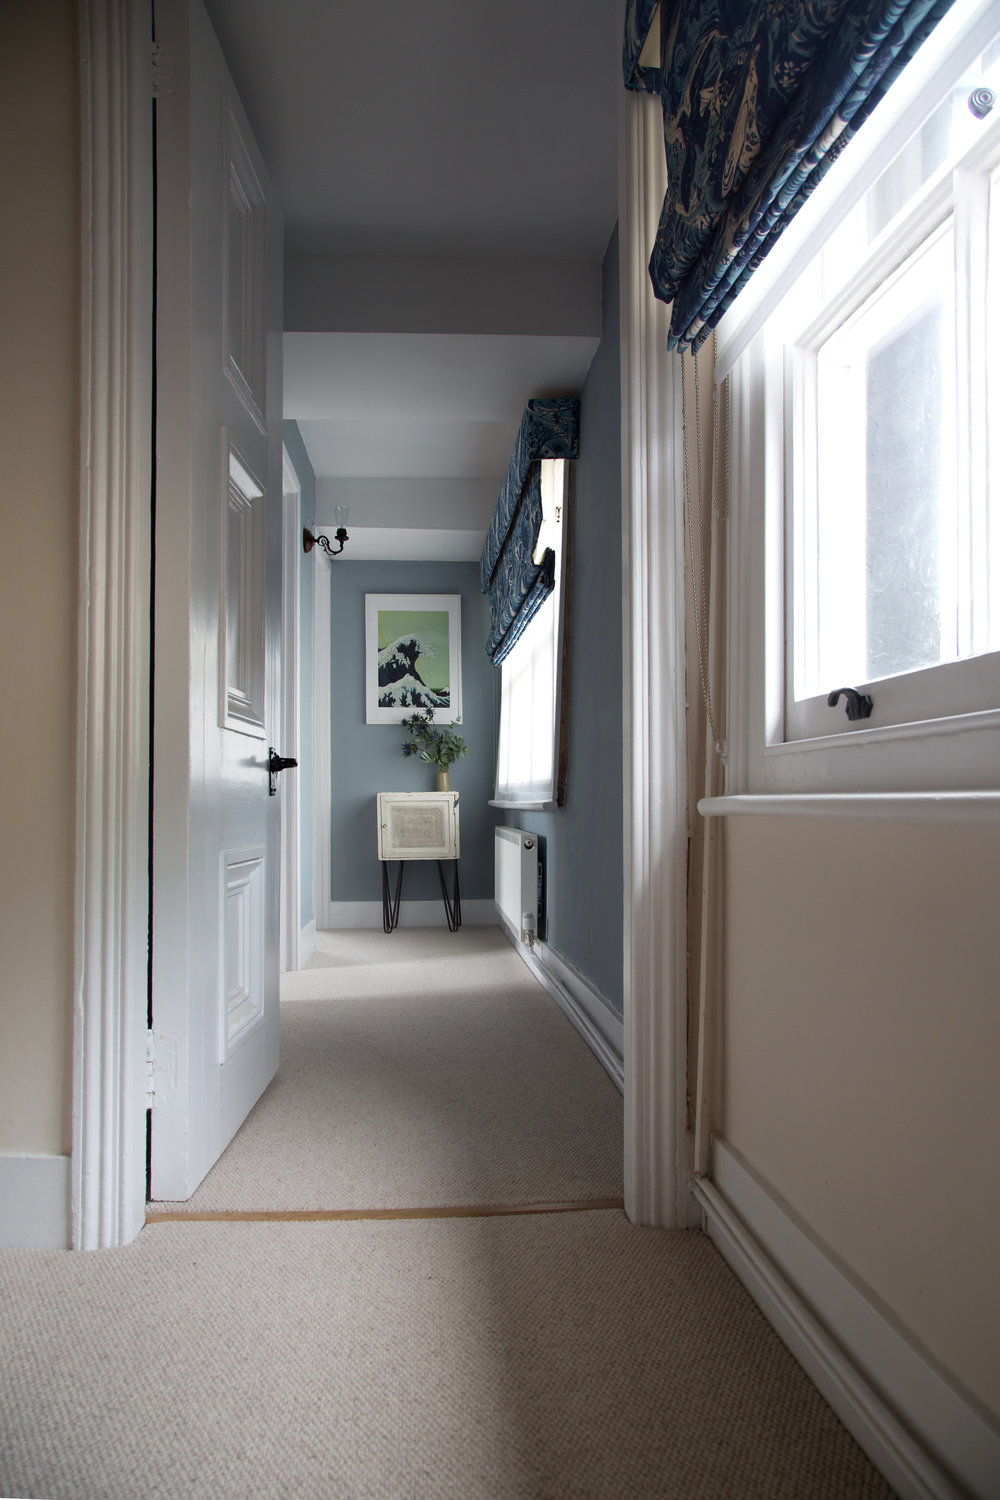 A Light-Filled Hallway in a Grade II Listed Holiday Home in Battle East Sussex – Interior Design by Smartstyle Interiors